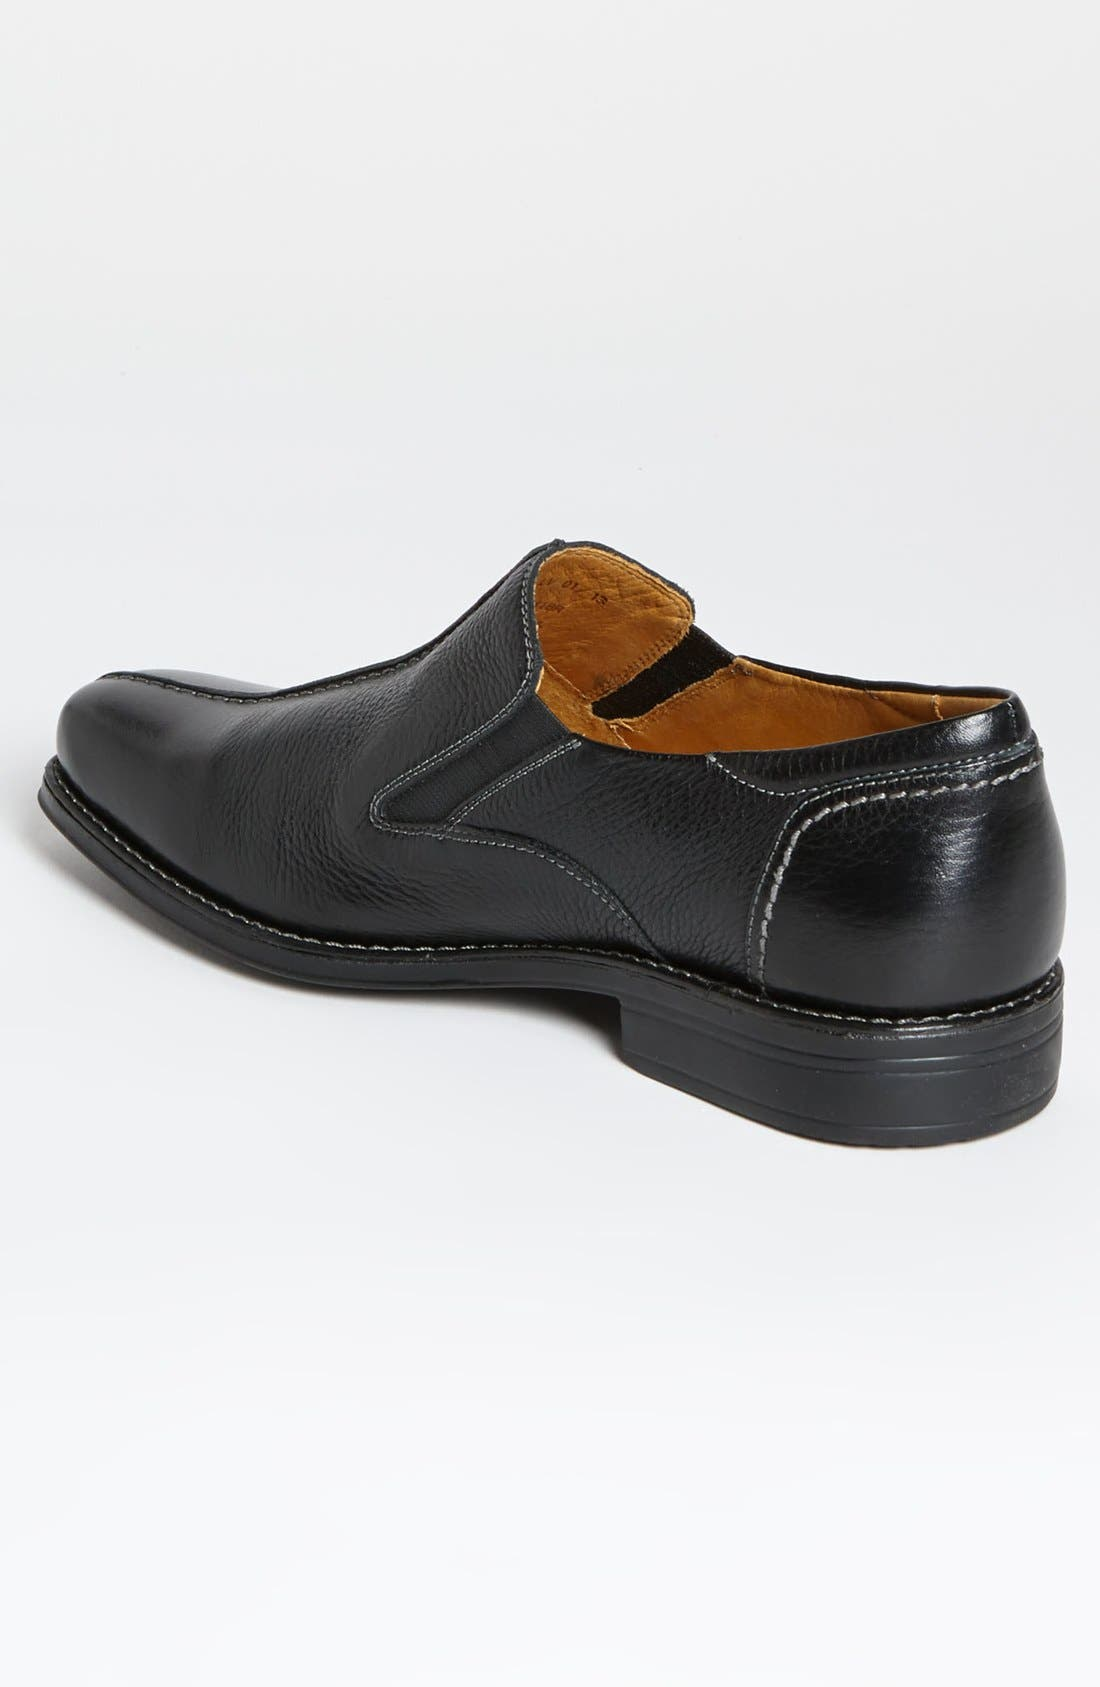 'Tampa' Loafer,                             Alternate thumbnail 2, color,                             BLACK